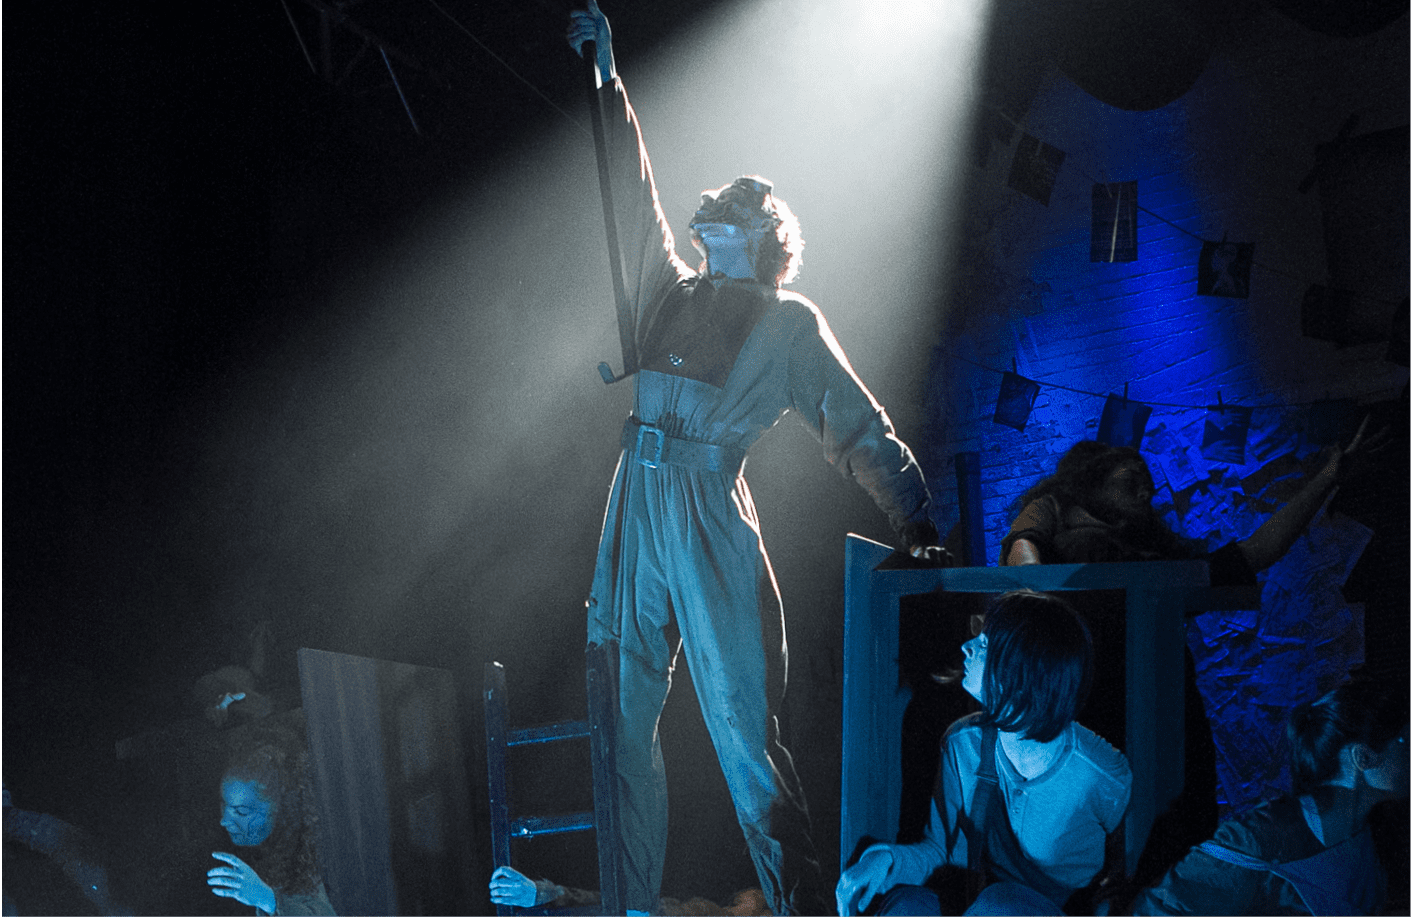 an acting student standing on stage with blue lighting and a spotlight beaming down on them. Their right hand is raised. There are other actors crouching down and looking up at them.